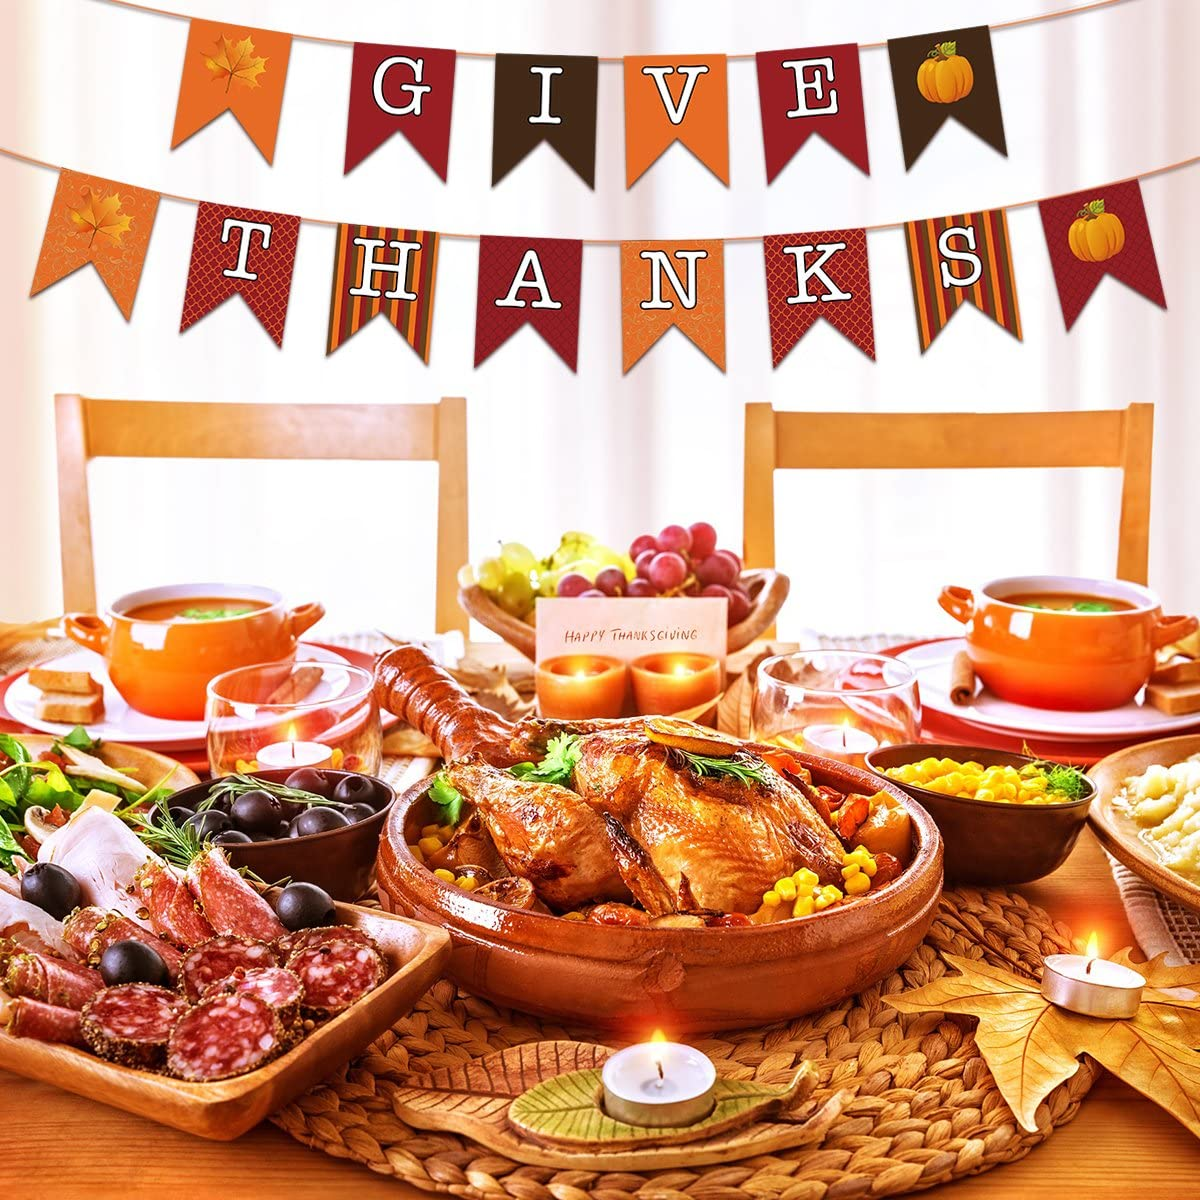 Happy Thanksgiving Banner Thanksgiving Day Decorations Paper Banner Swallowtail Flag Hanging Garland